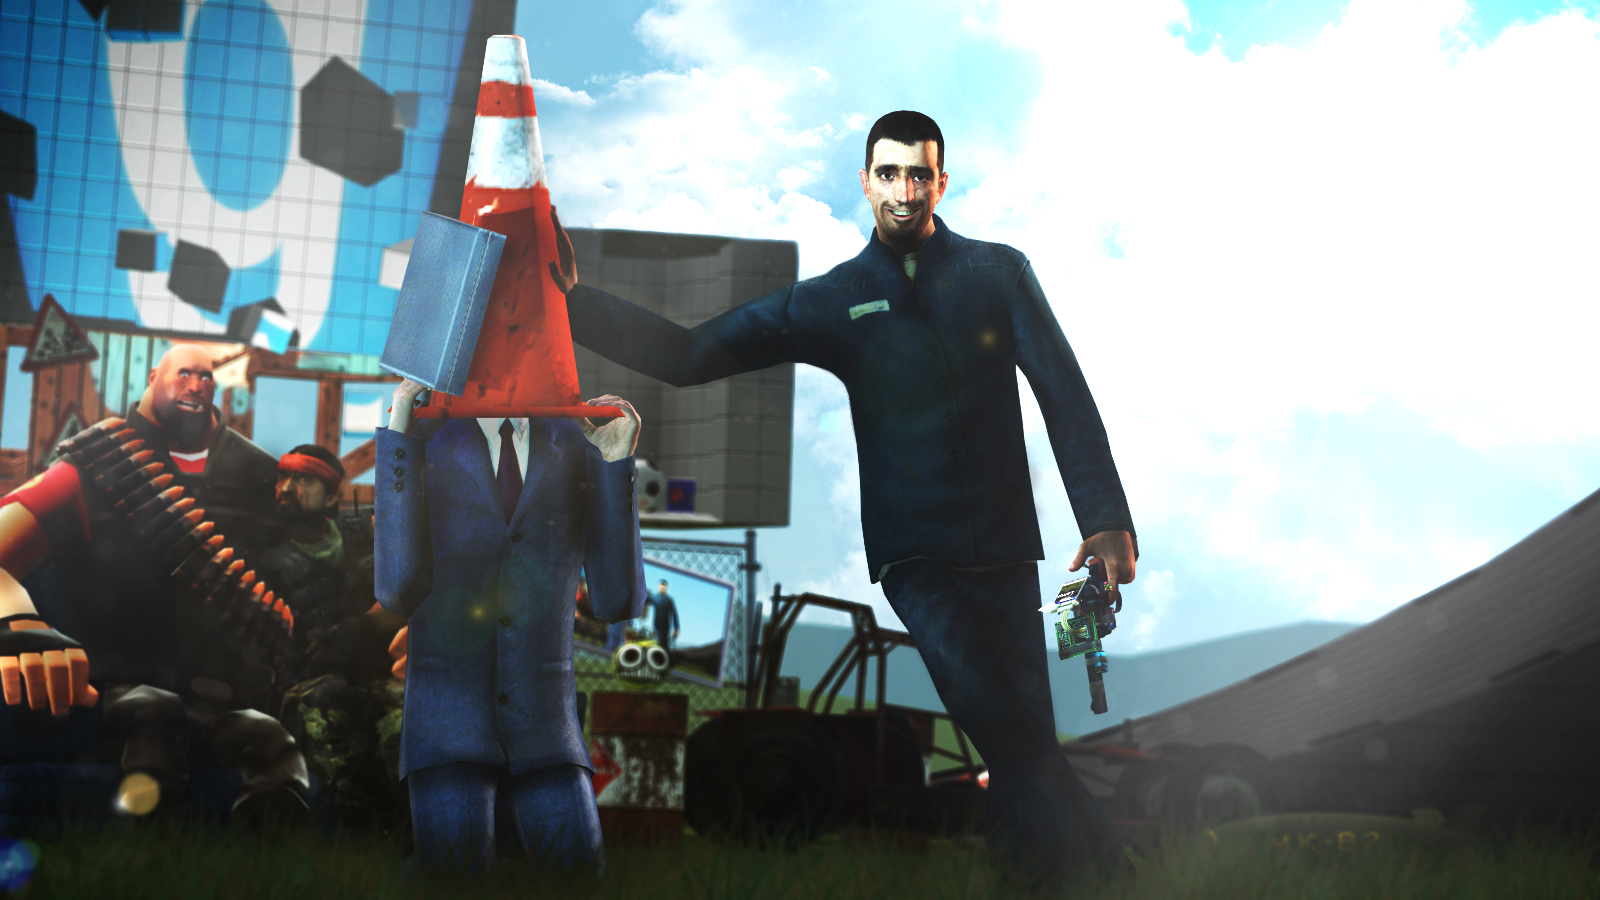 Gman with cone hat | Garry's Mod | Know Your Meme